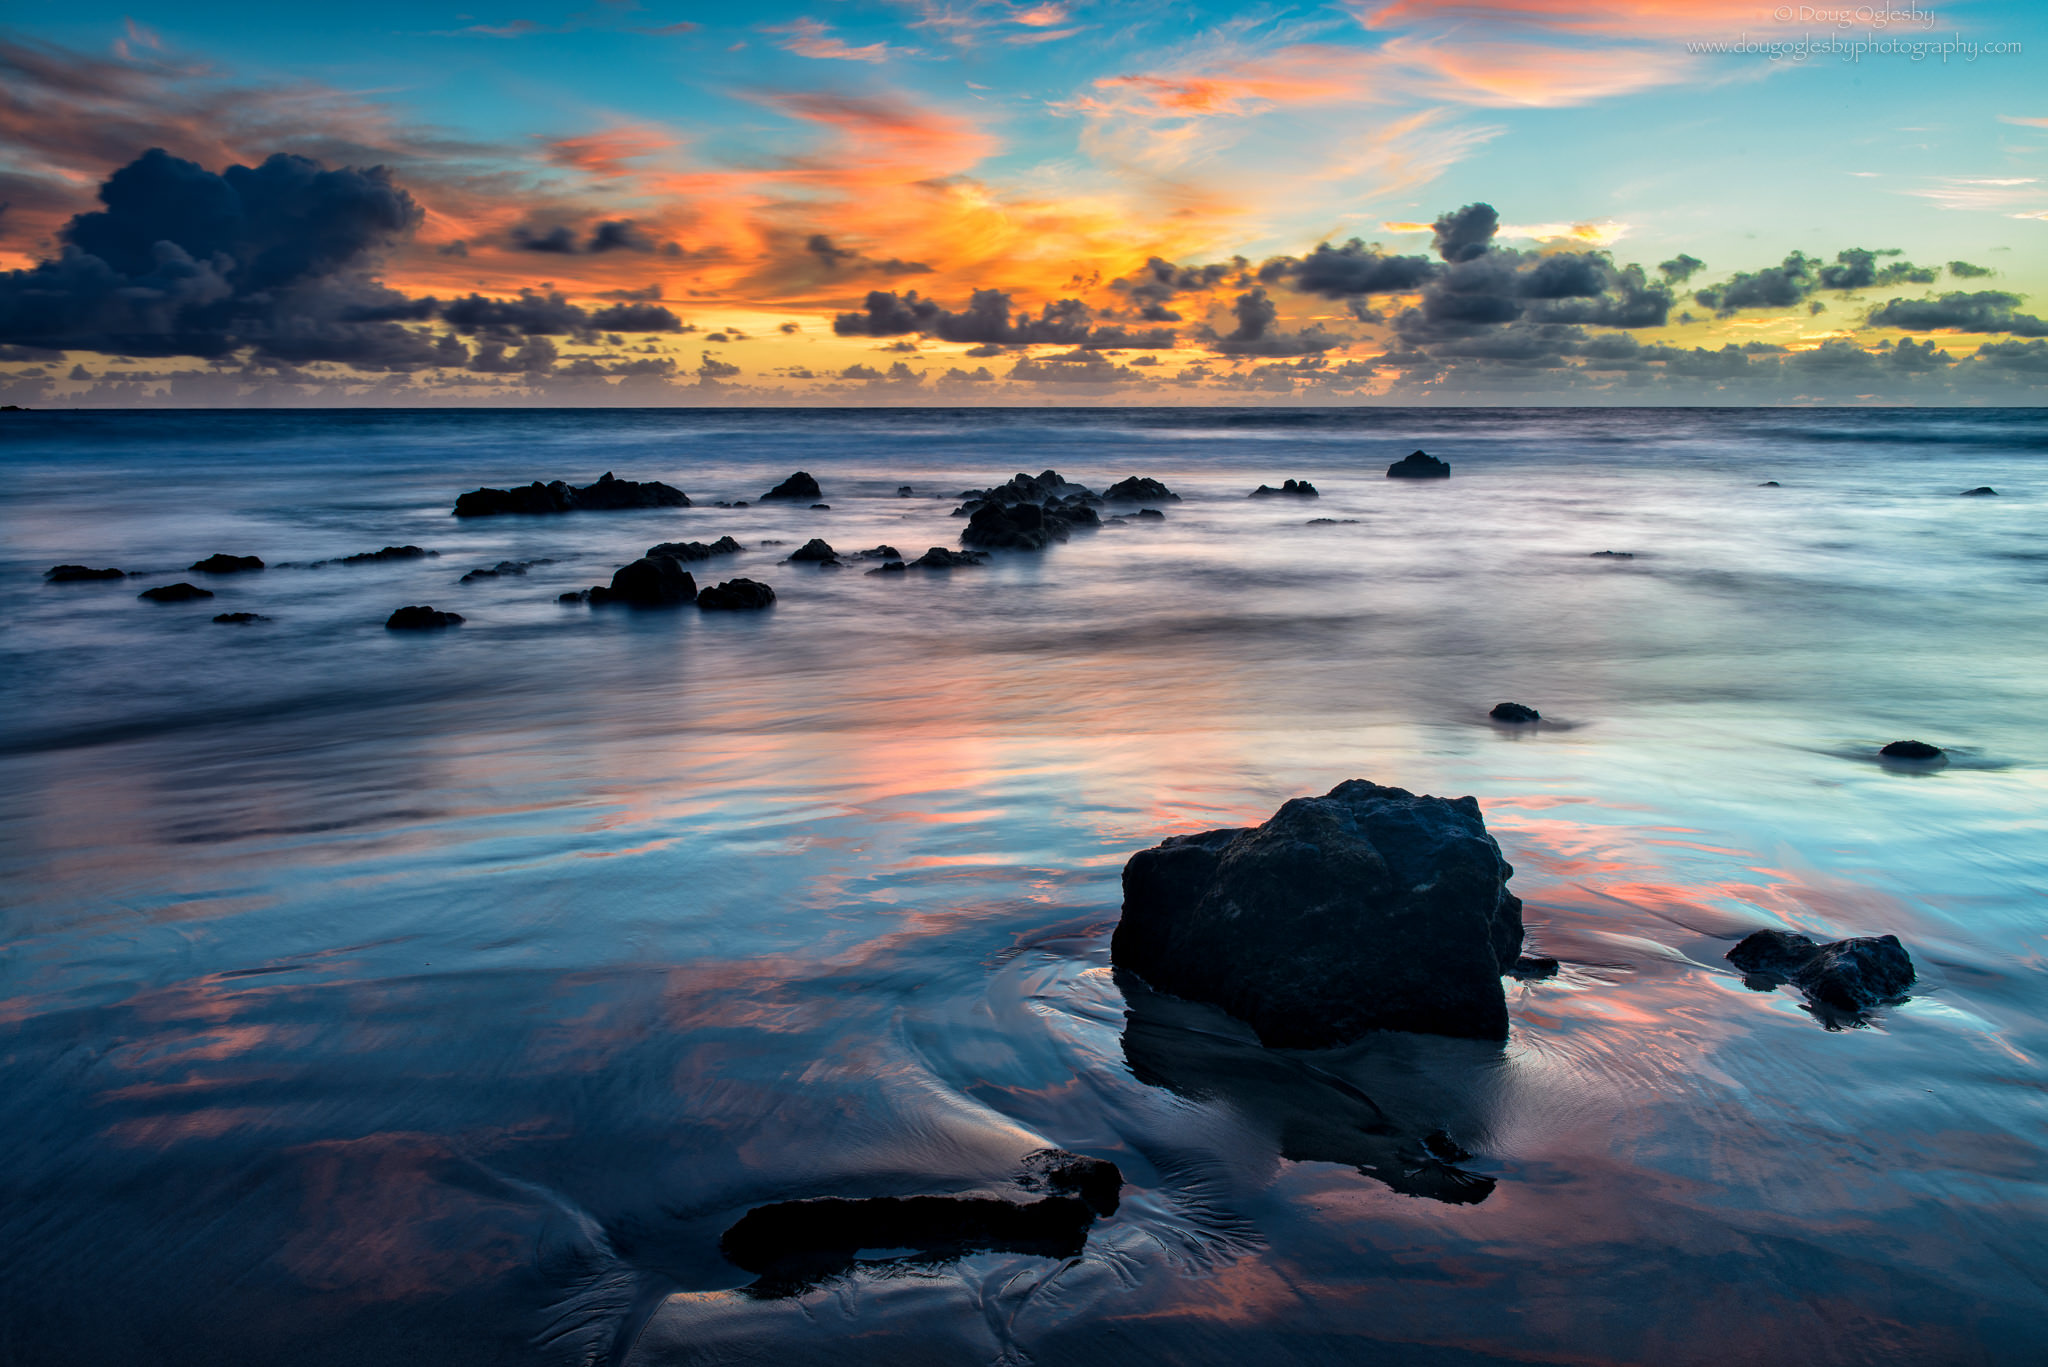 Sky reflecting in the sands of Koki Beach in Hana, Mau'i. Copyright image by Photographer Doug Oglesby @ https://photographyworld.org/nature/early-hawaii-history/